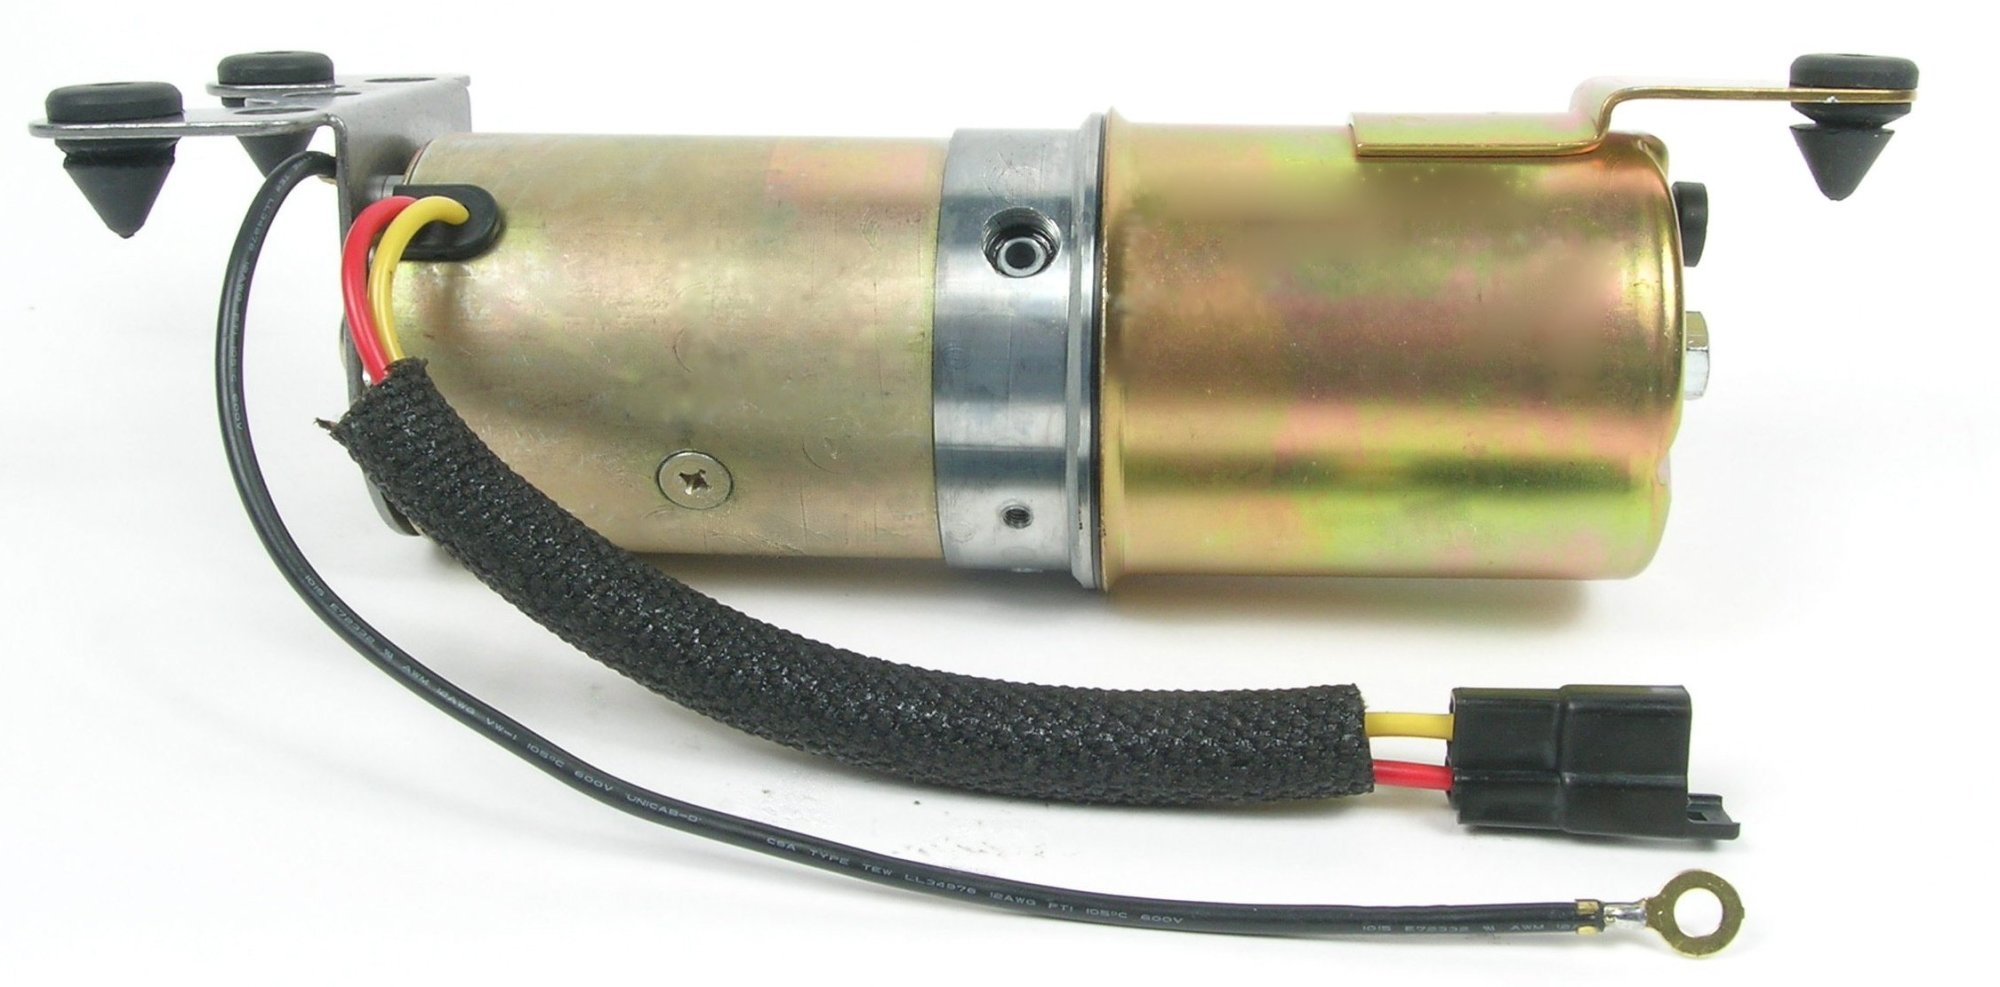 hight resolution of get quotations convertible top pump motor assembly 1965 1966 1967 1968 1969 1970 buick electra